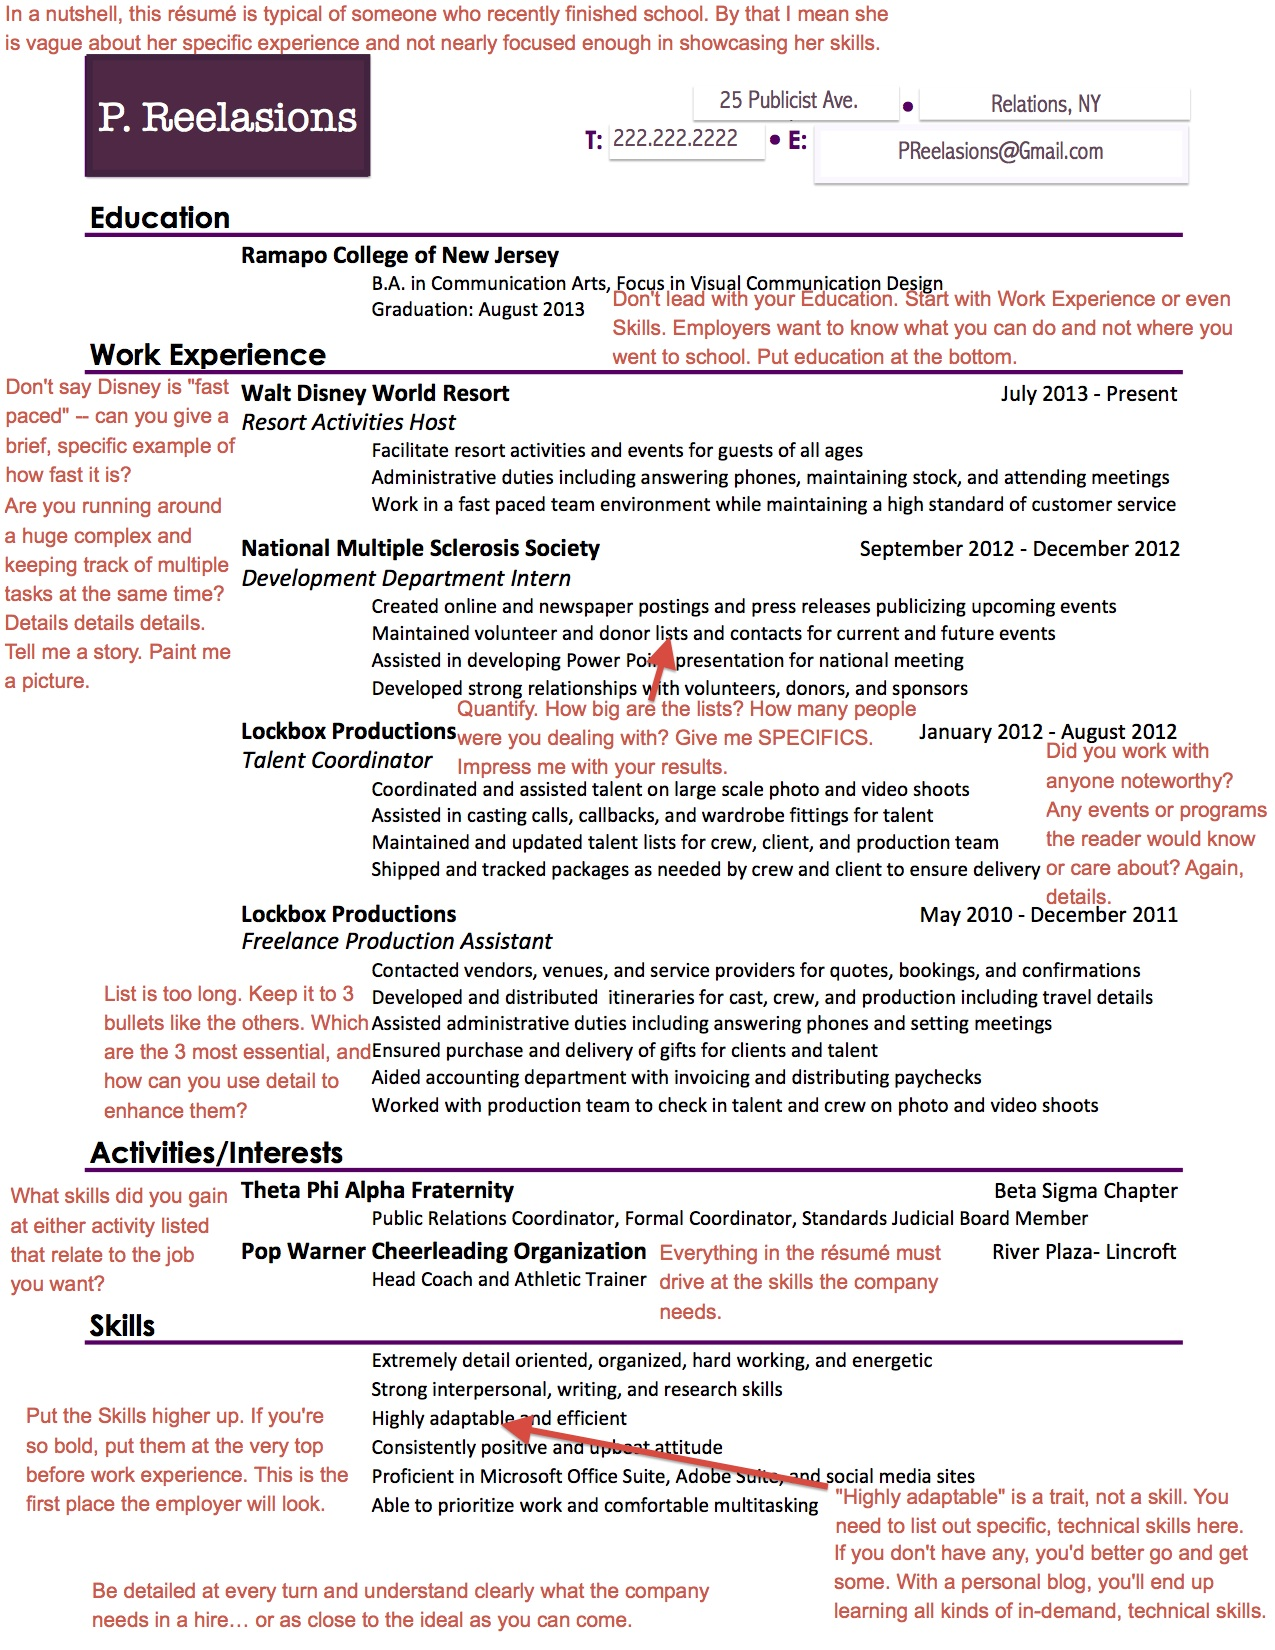 P.Reelasions Resume JPEG  Recent College Graduate Resume